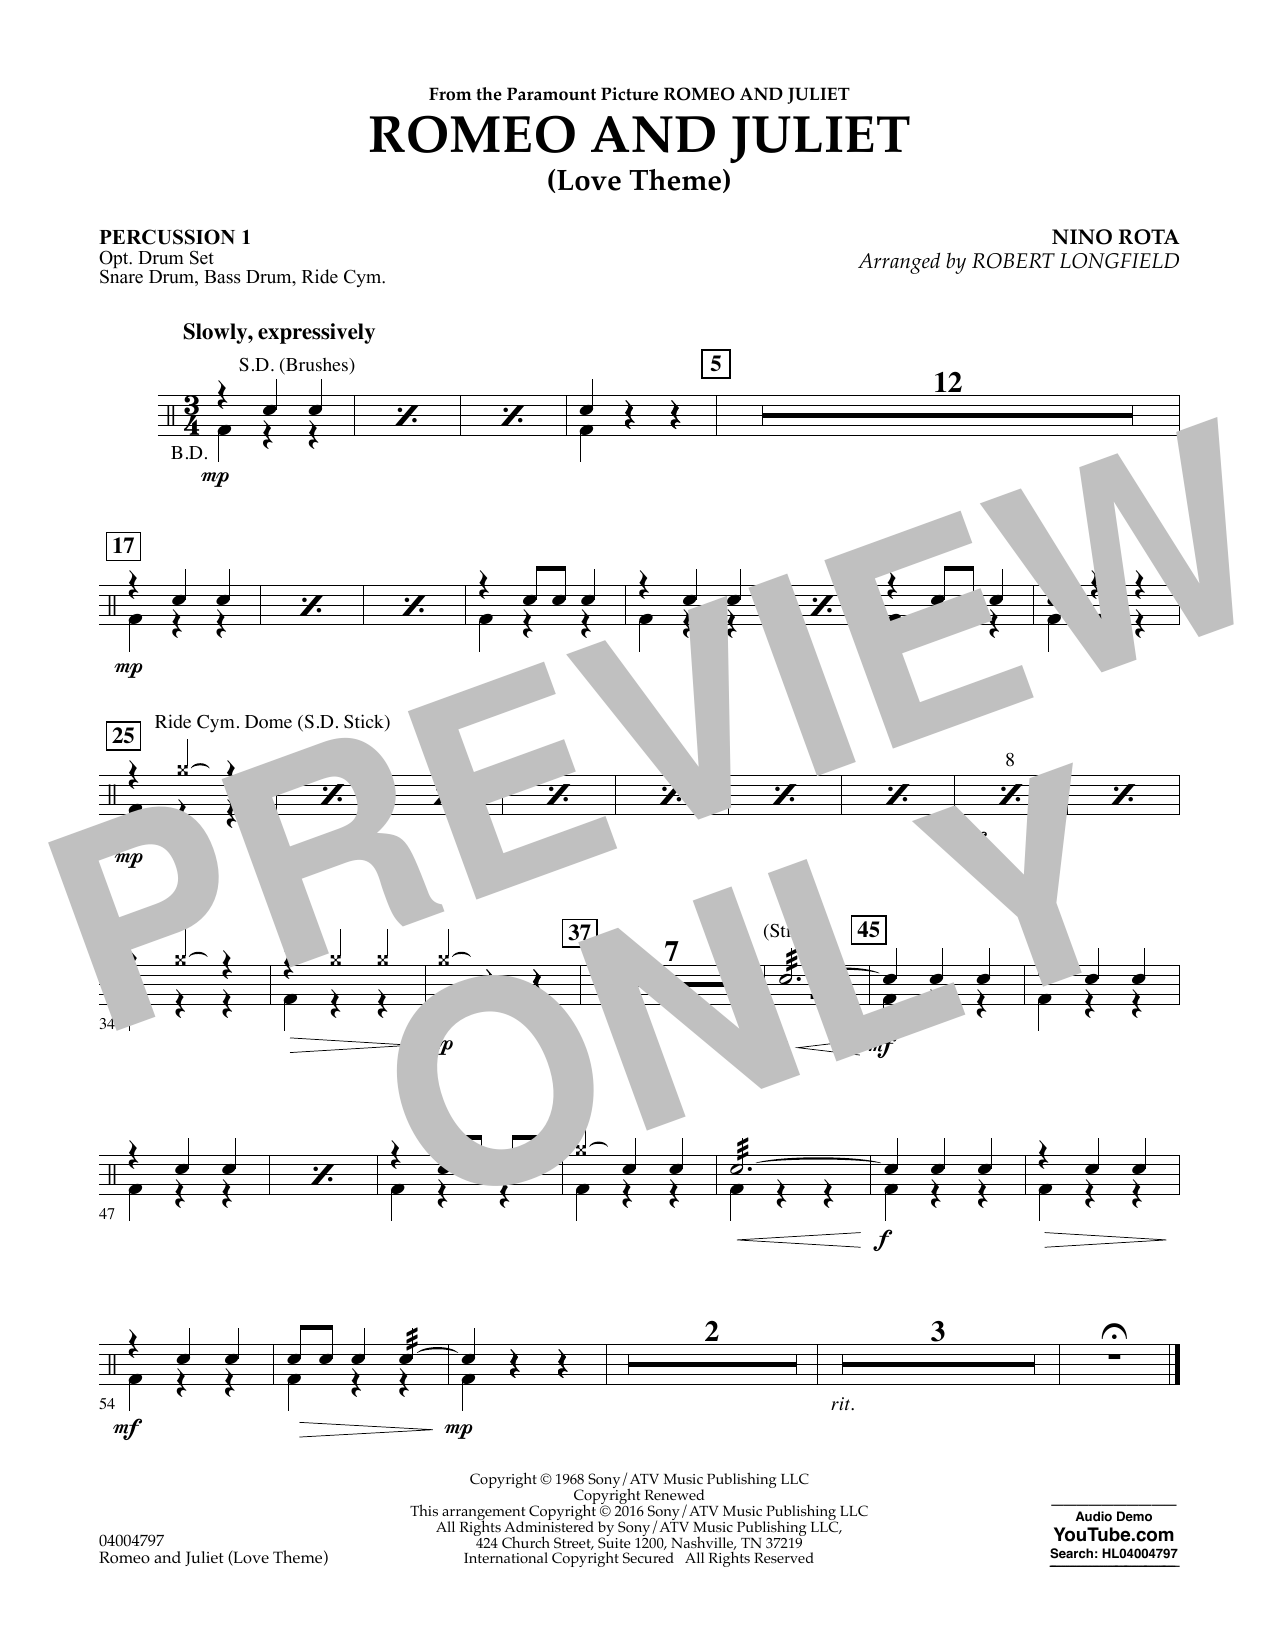 Romeo and Juliet (Love Theme) - Percussion 1 (Concert Band)